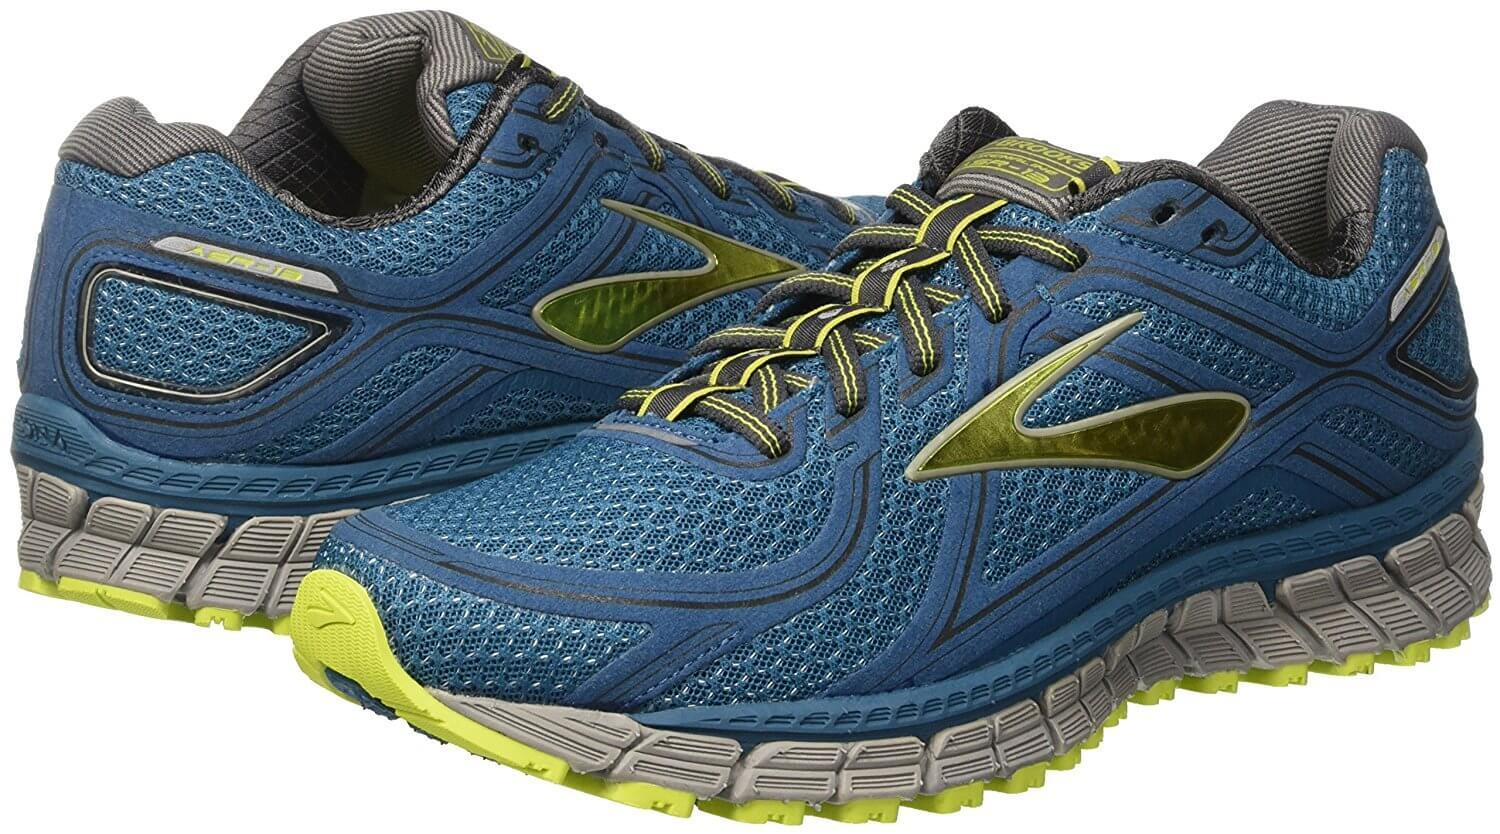 The Brooks Adrenaline ASR 13 is an attractive trail shoe